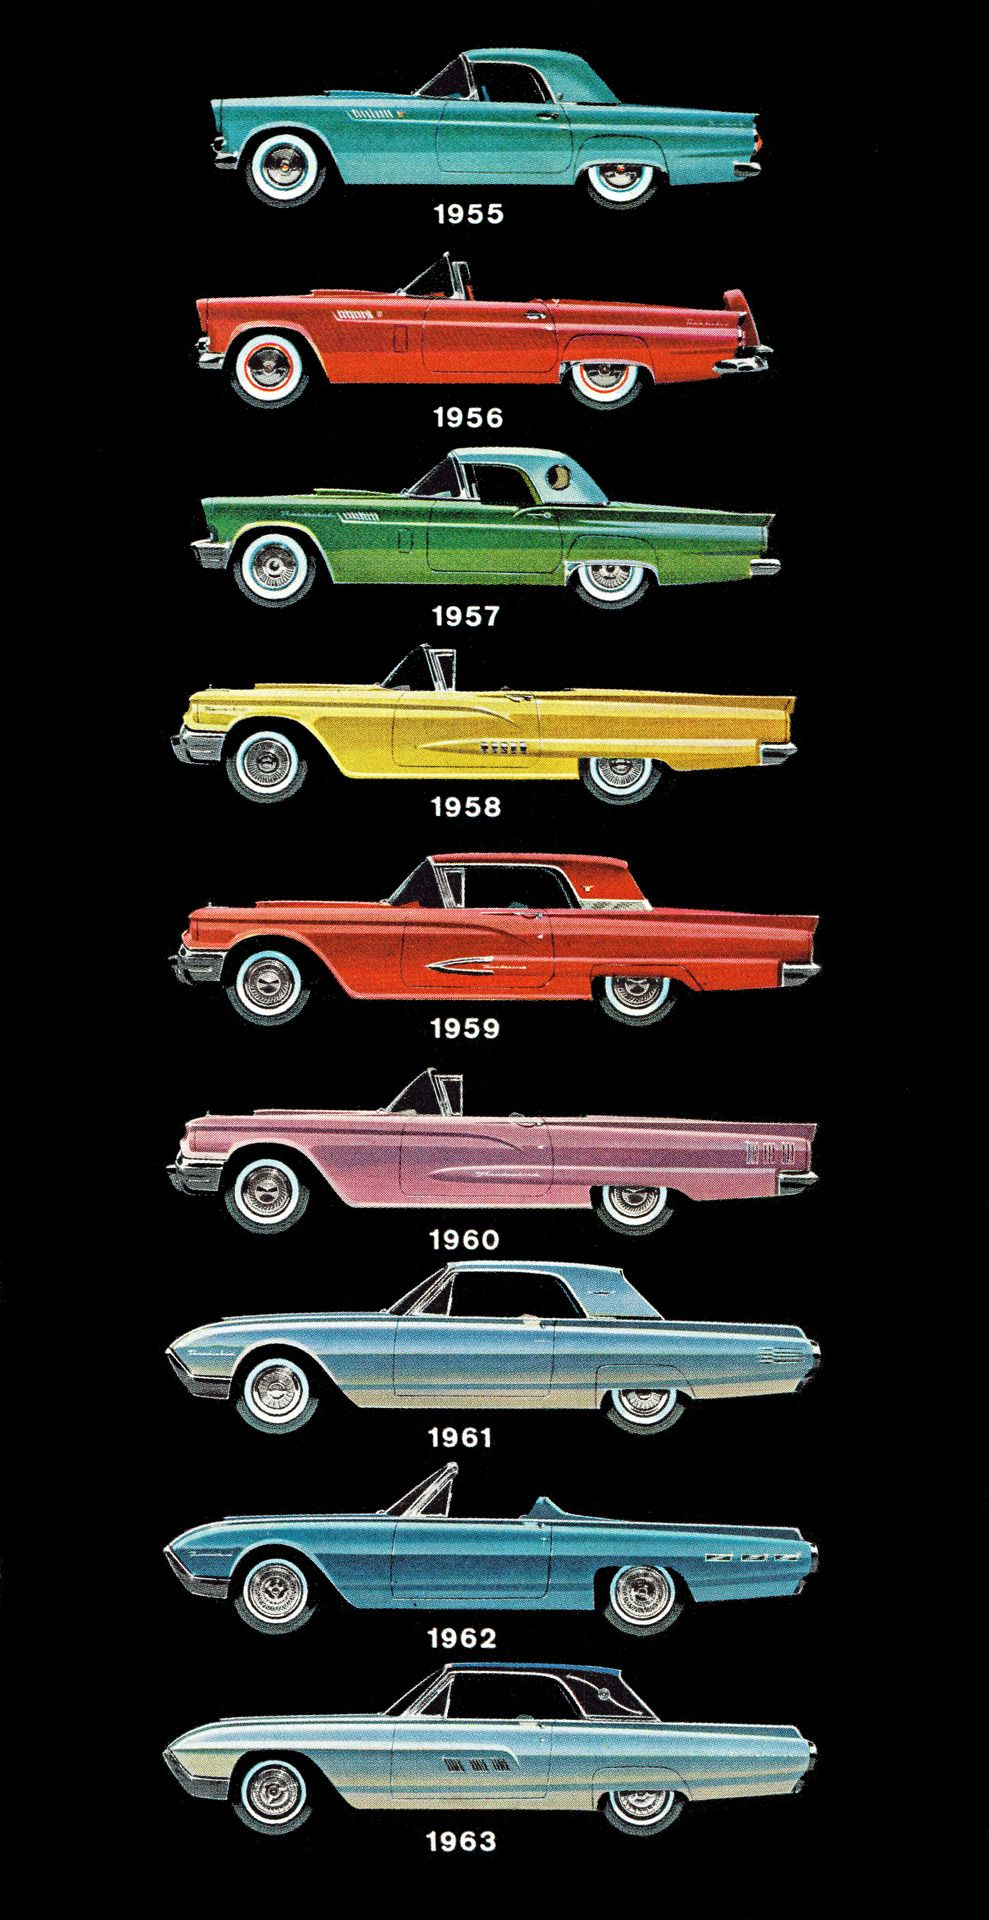 Ford Thunderbird Models 1955 1963 They Had Some Problems But It